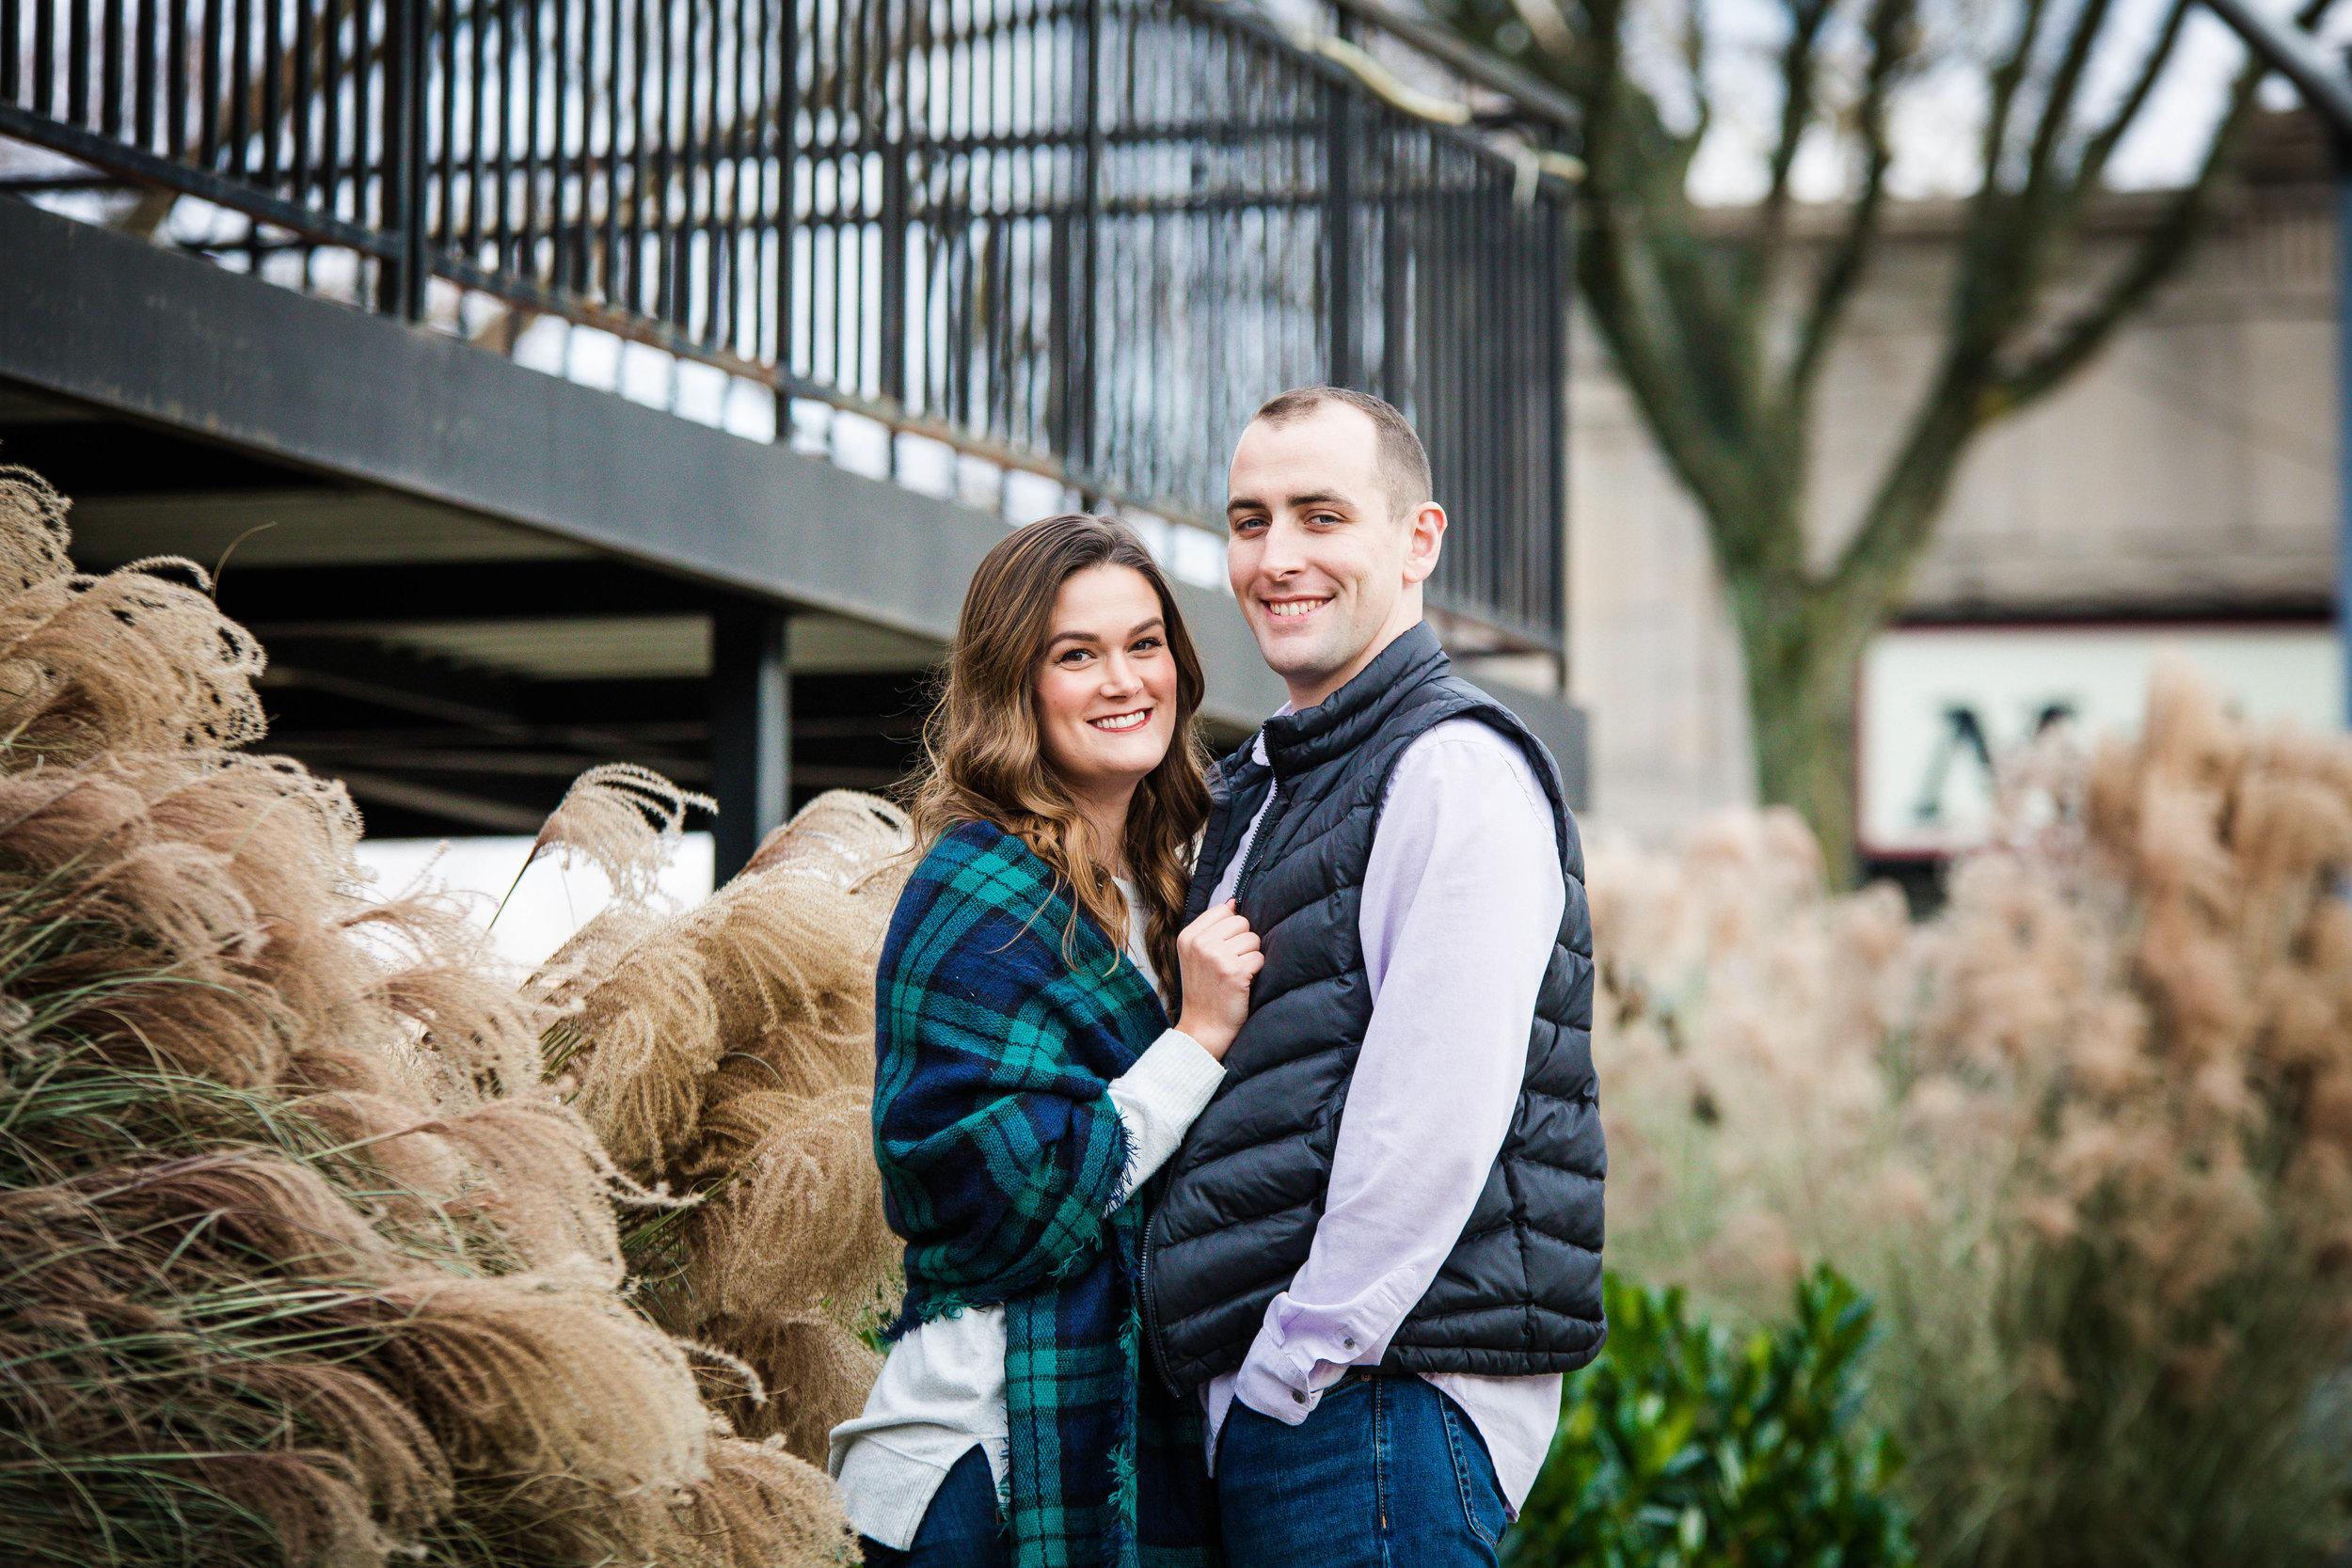 Keswick Village Engagement Shoot-007.jpg